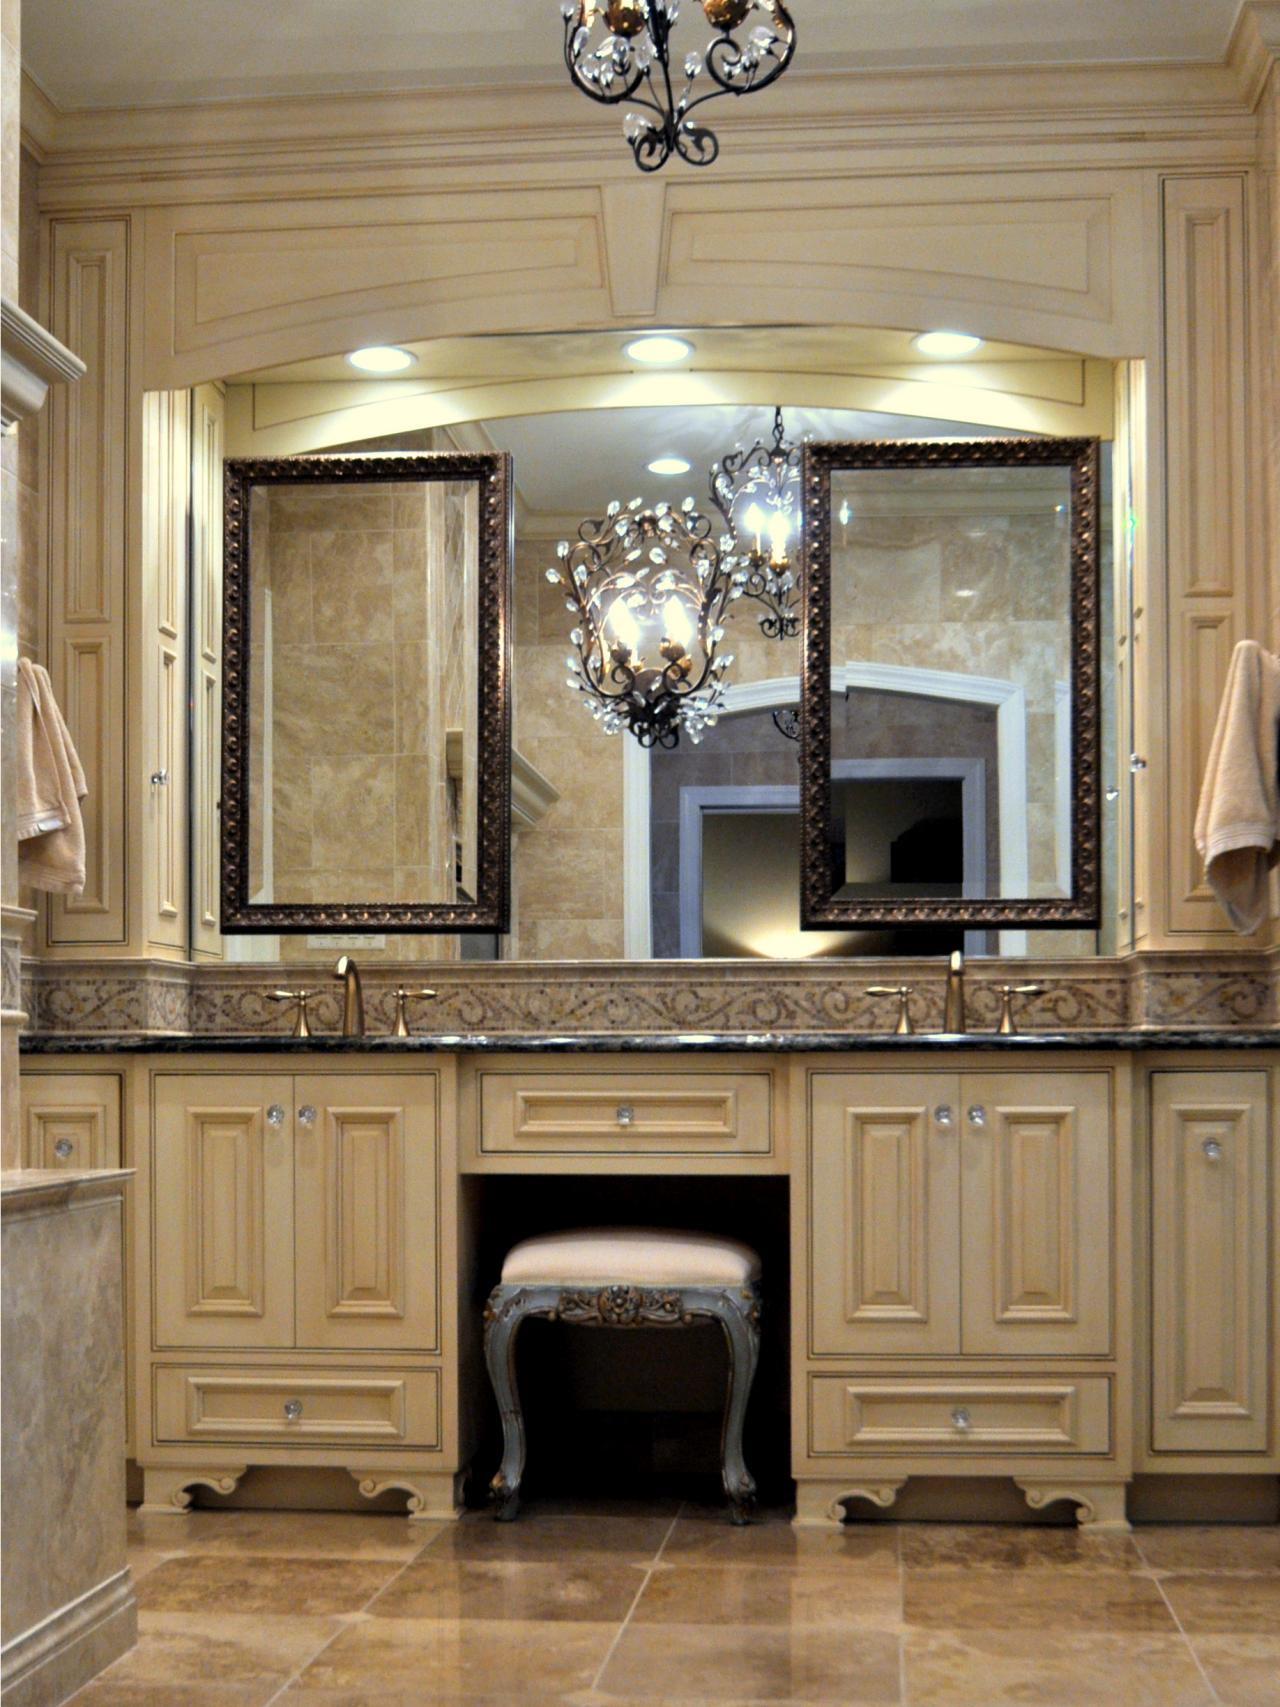 9 bathroom vanity ideas bathroom design choose floor Double vanity ideas bathroom